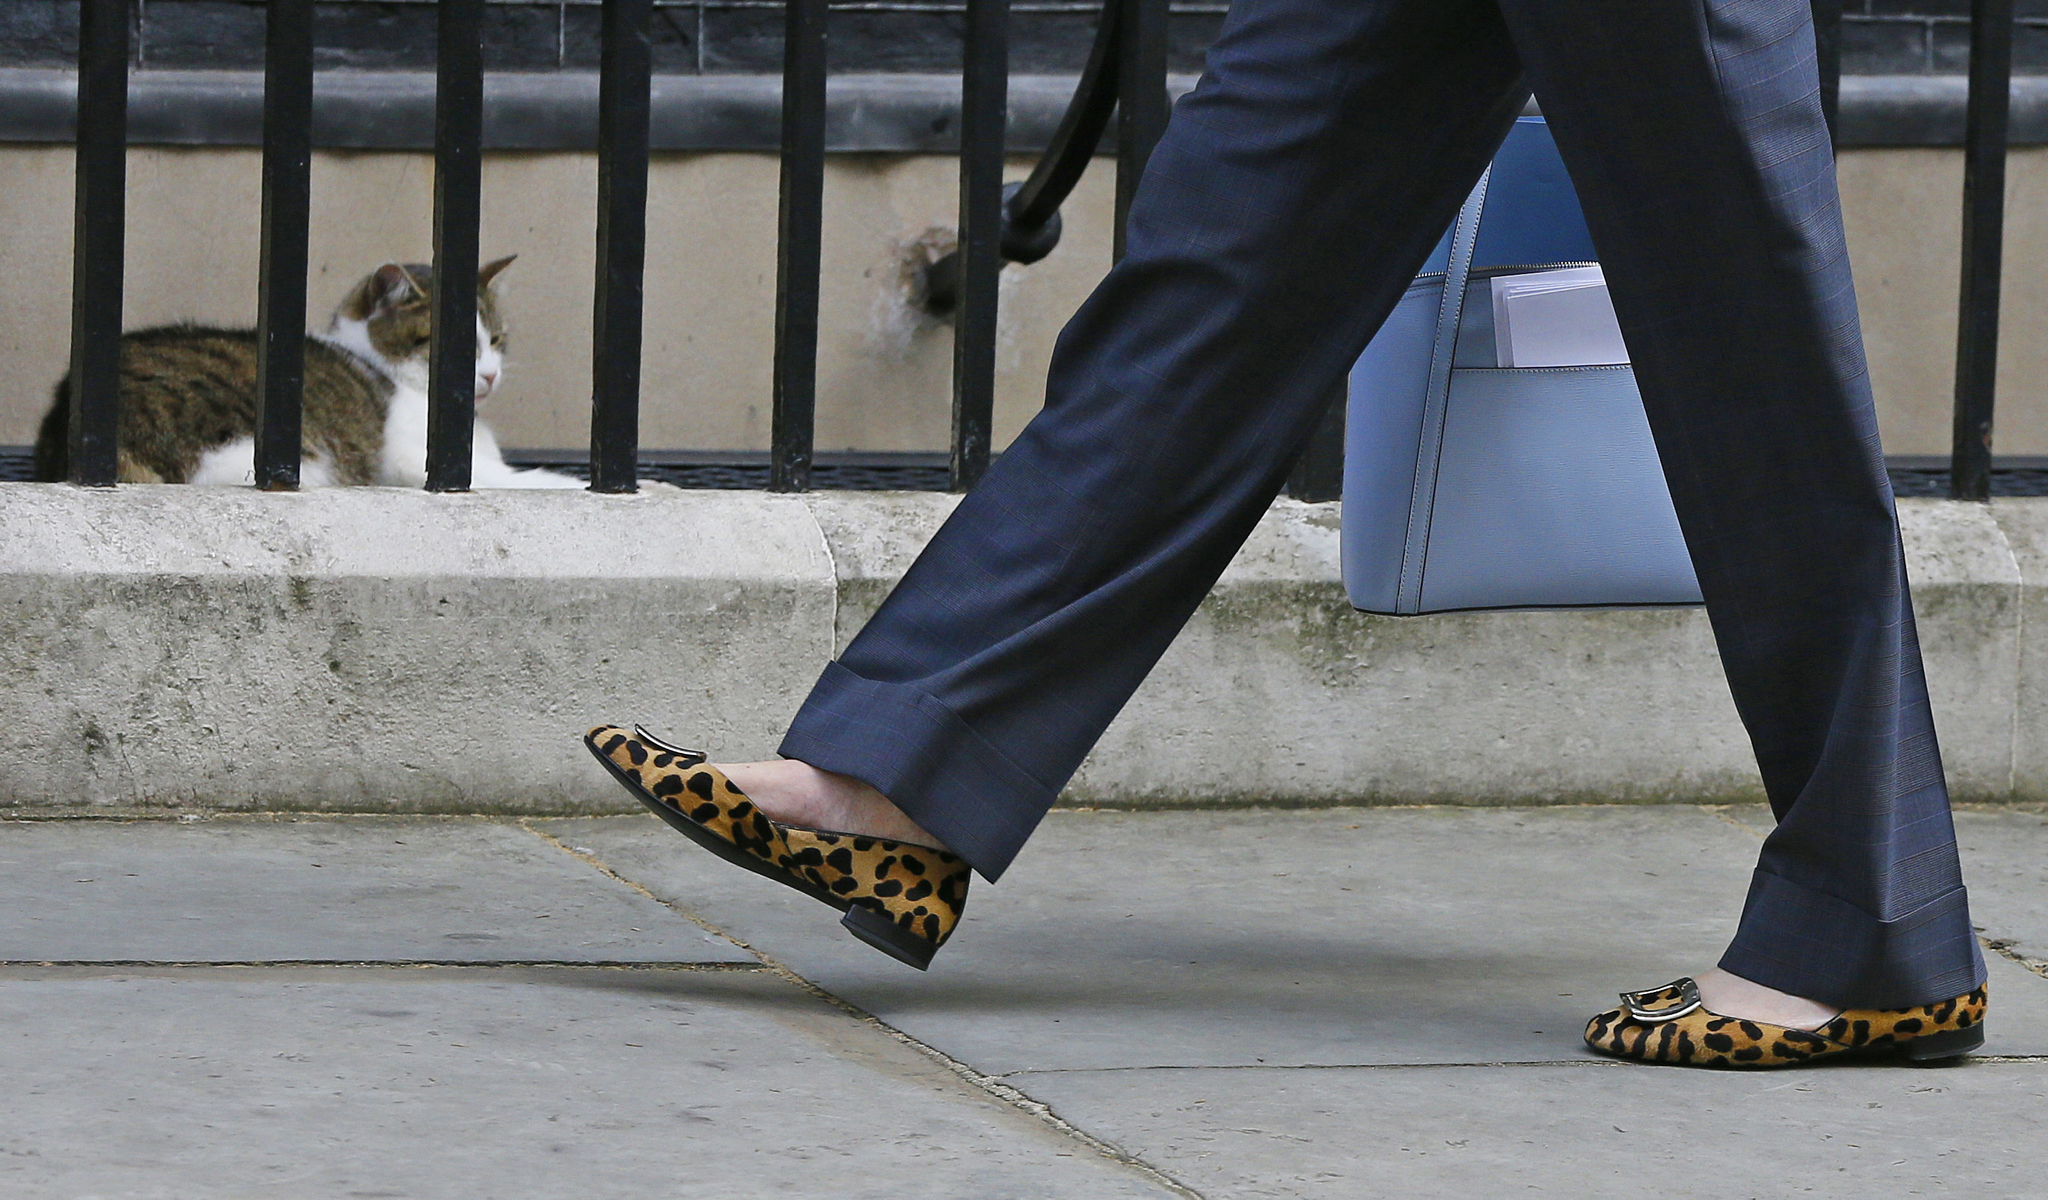 The shoes of Britain's Home Secretary Theresa May as she walks past Larry the Downing Street cat as she arrives to attend a cabinet meeting at 10 Downing Street, in London, Tuesday, July 12, 2016. Theresa May will become Britain's new Prime Minister on Wednesday.